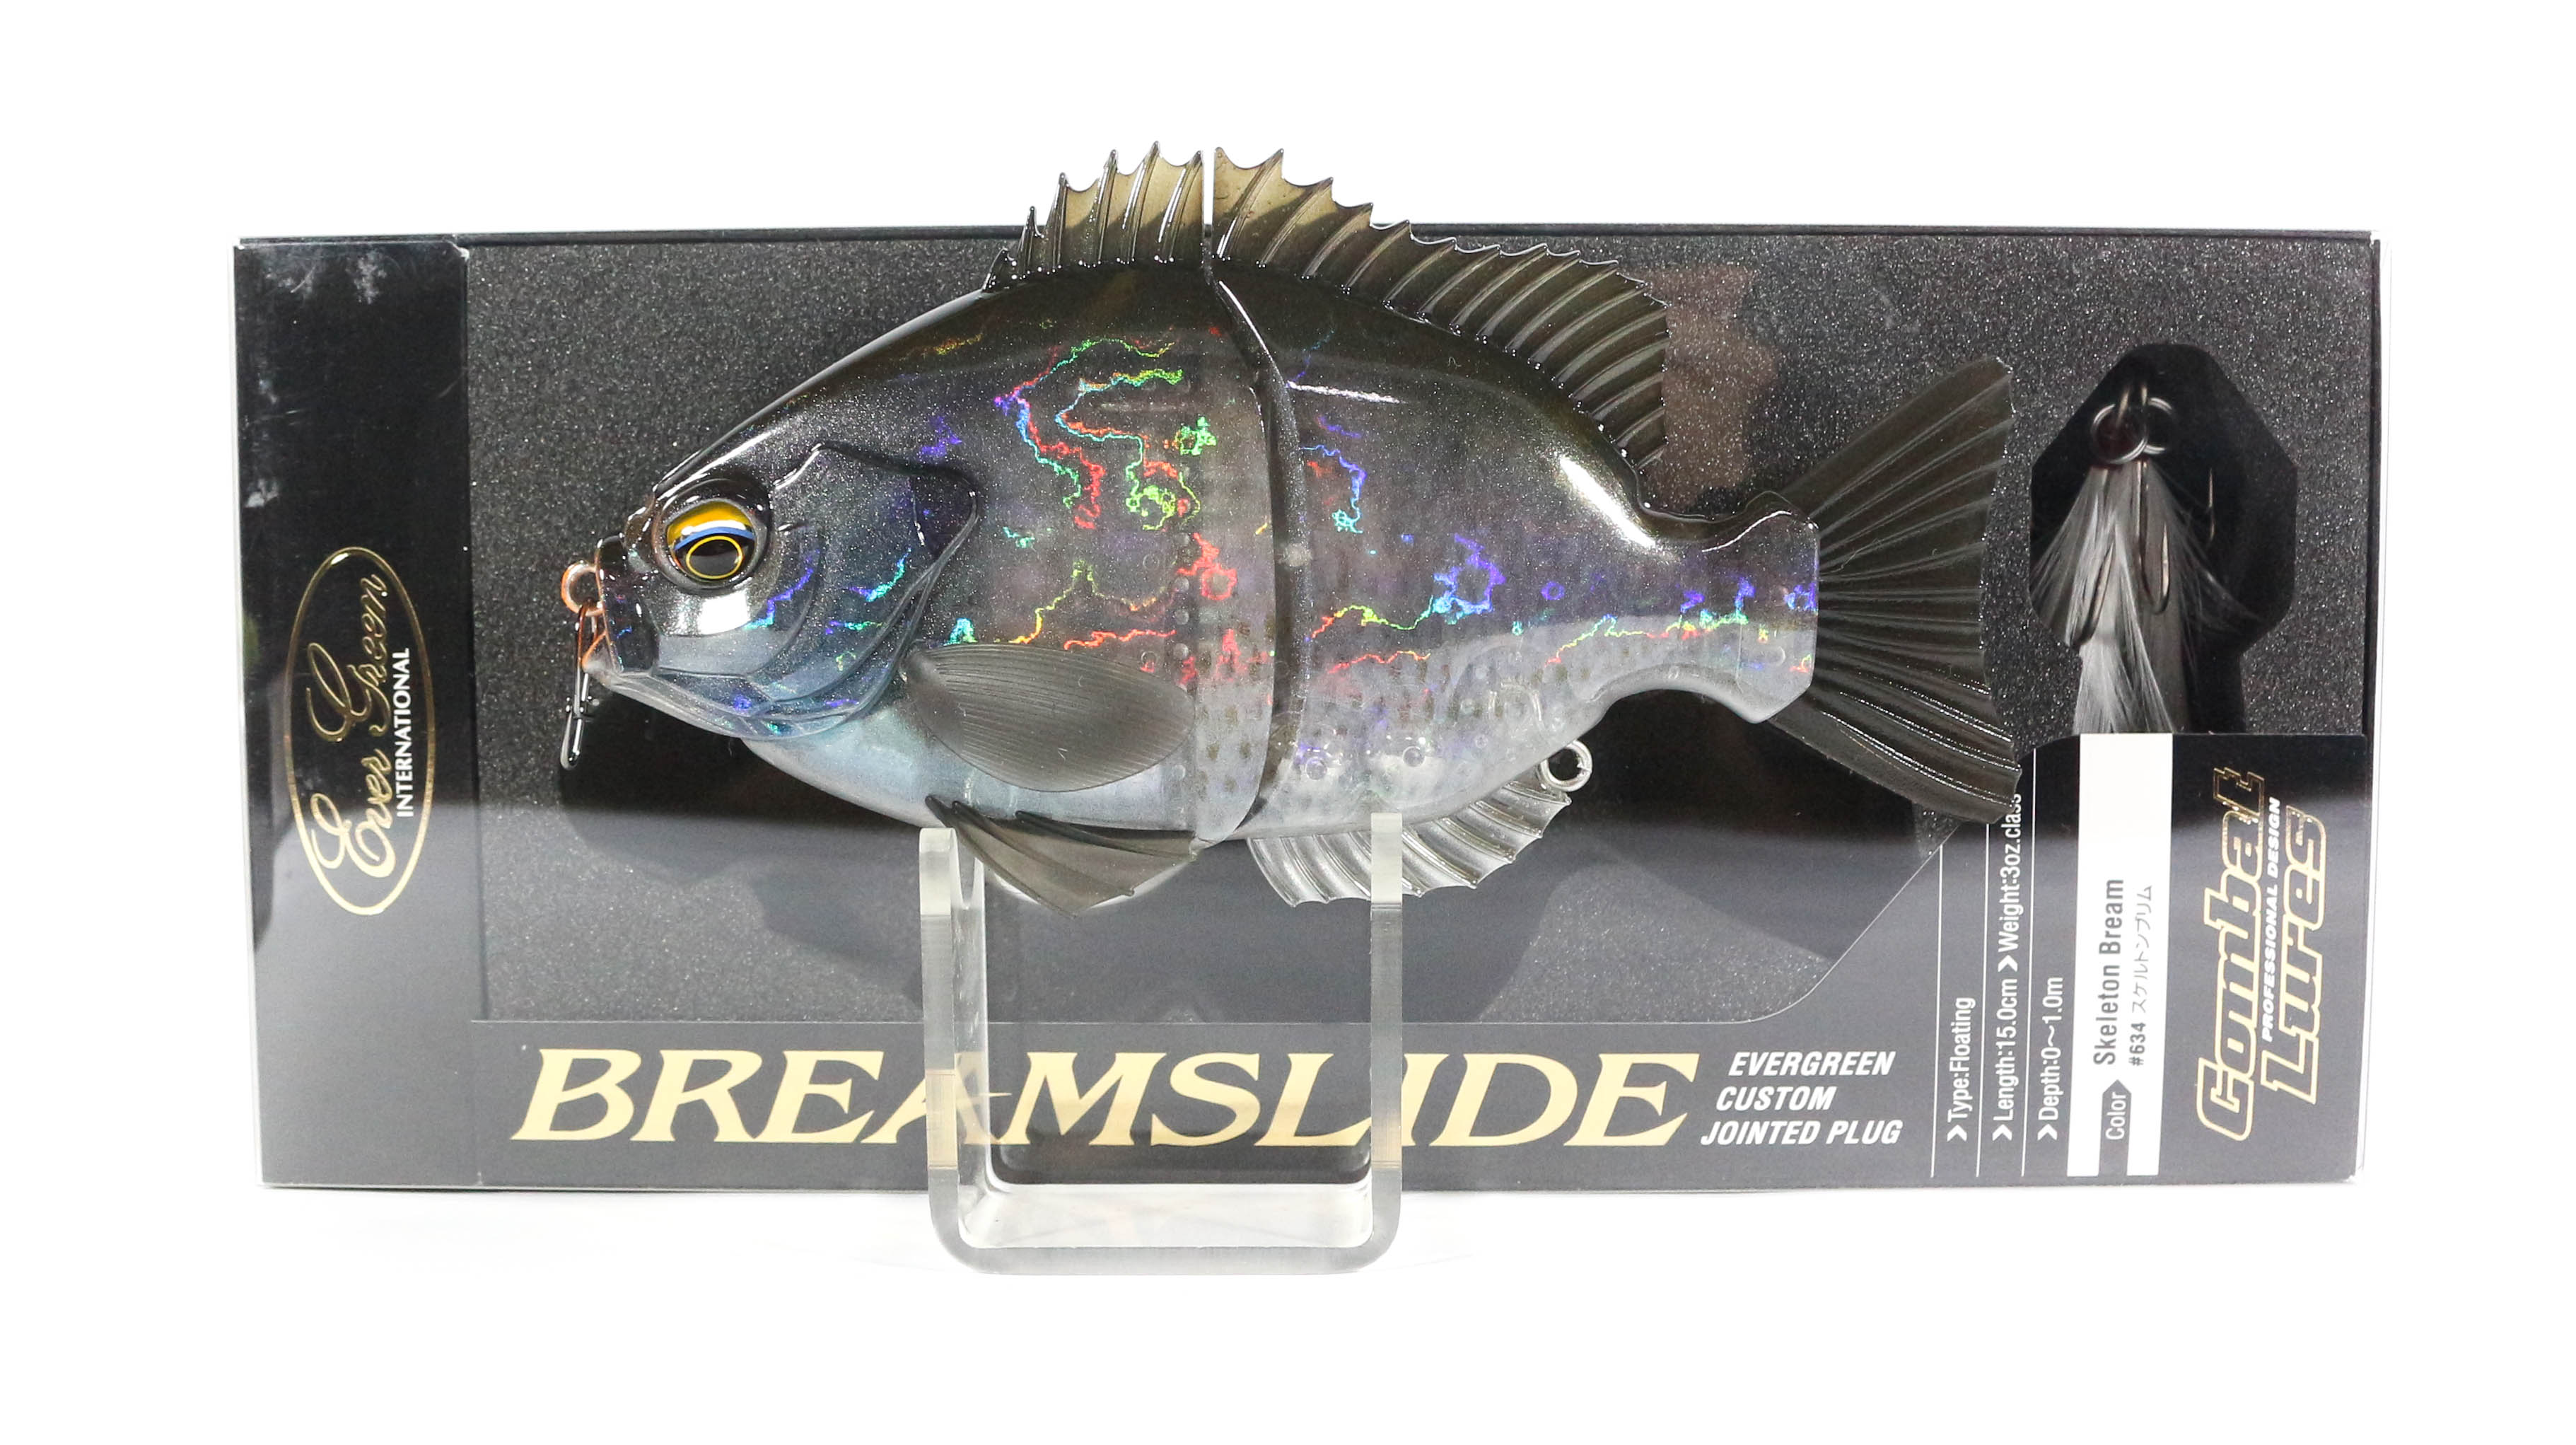 Evergreen Bream Slide Flat Side Jointed Lipless Floating Lure 634 (5981)